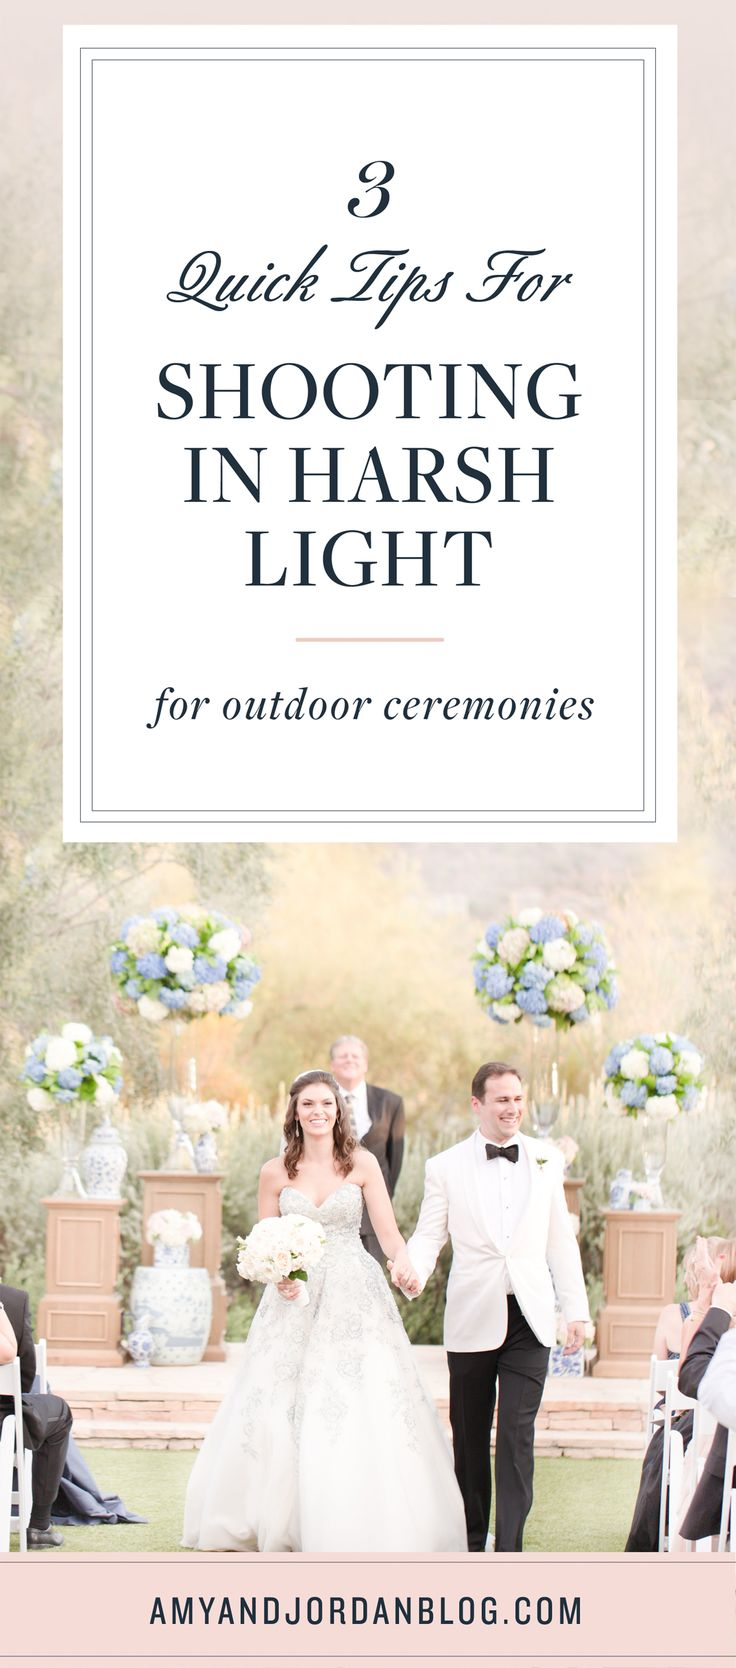 If you've EVER shot an outdoor wedding ceremony before, you know that sometimes the light isn't ideal! In fact, a lot of times, it can be REALLY harsh! Especially when the bride is first coming down the aisle! We'll teach you our three quick tips for shooting outdoor ceremonies in harsh light that should hopefully make things a little easier for you!